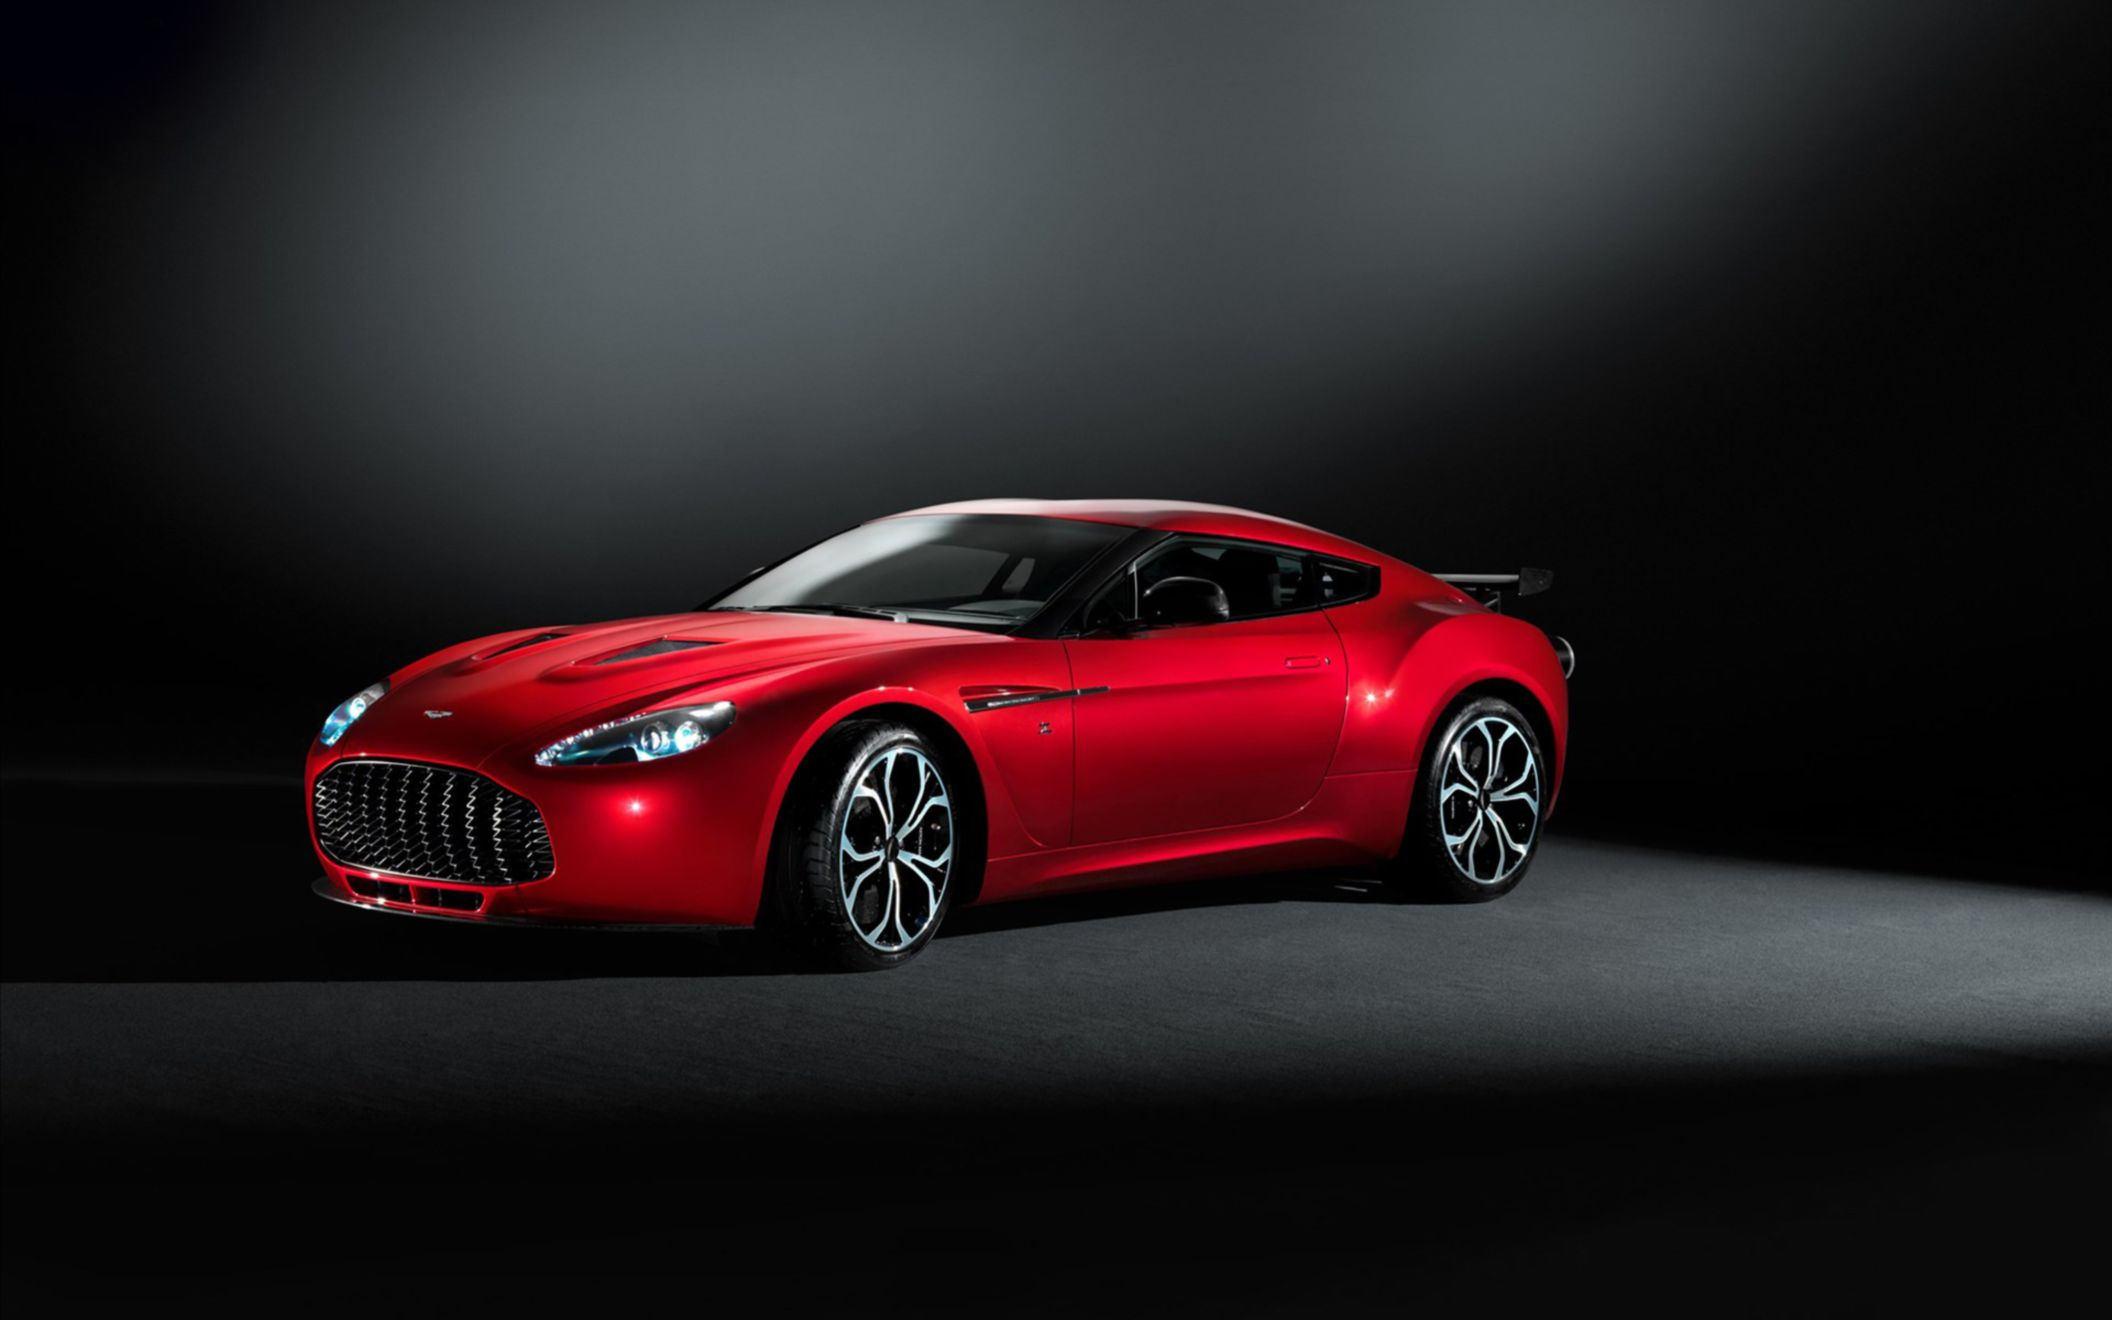 Download free HD 2013 Aston Martin V12 Zagato Wide Wallpaper, image